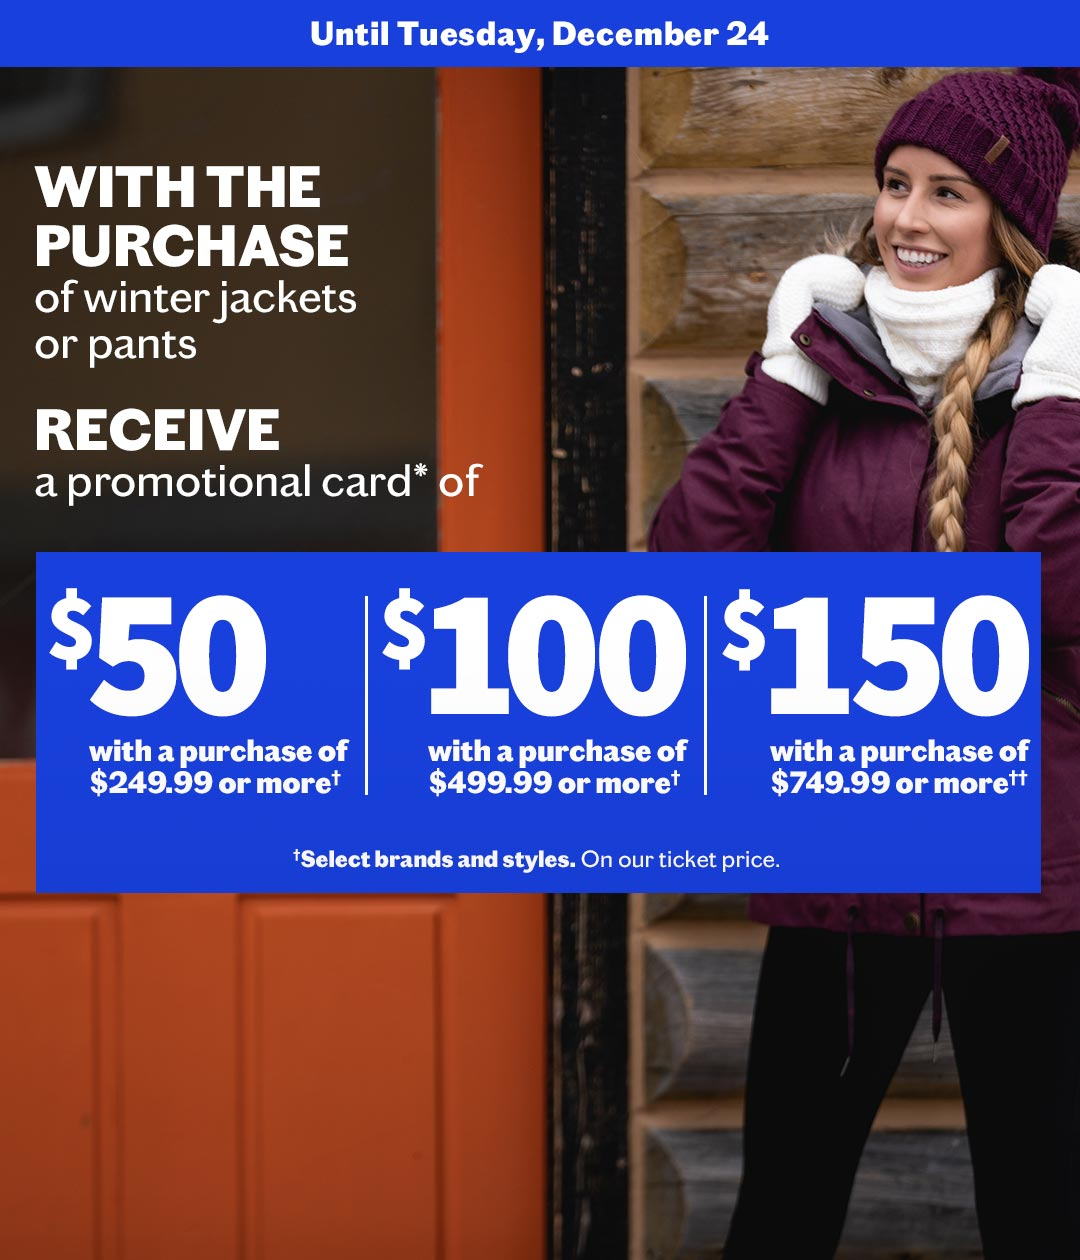 STAY WARM WITH OUR WINTER OUTERWEAR PROMOTION !